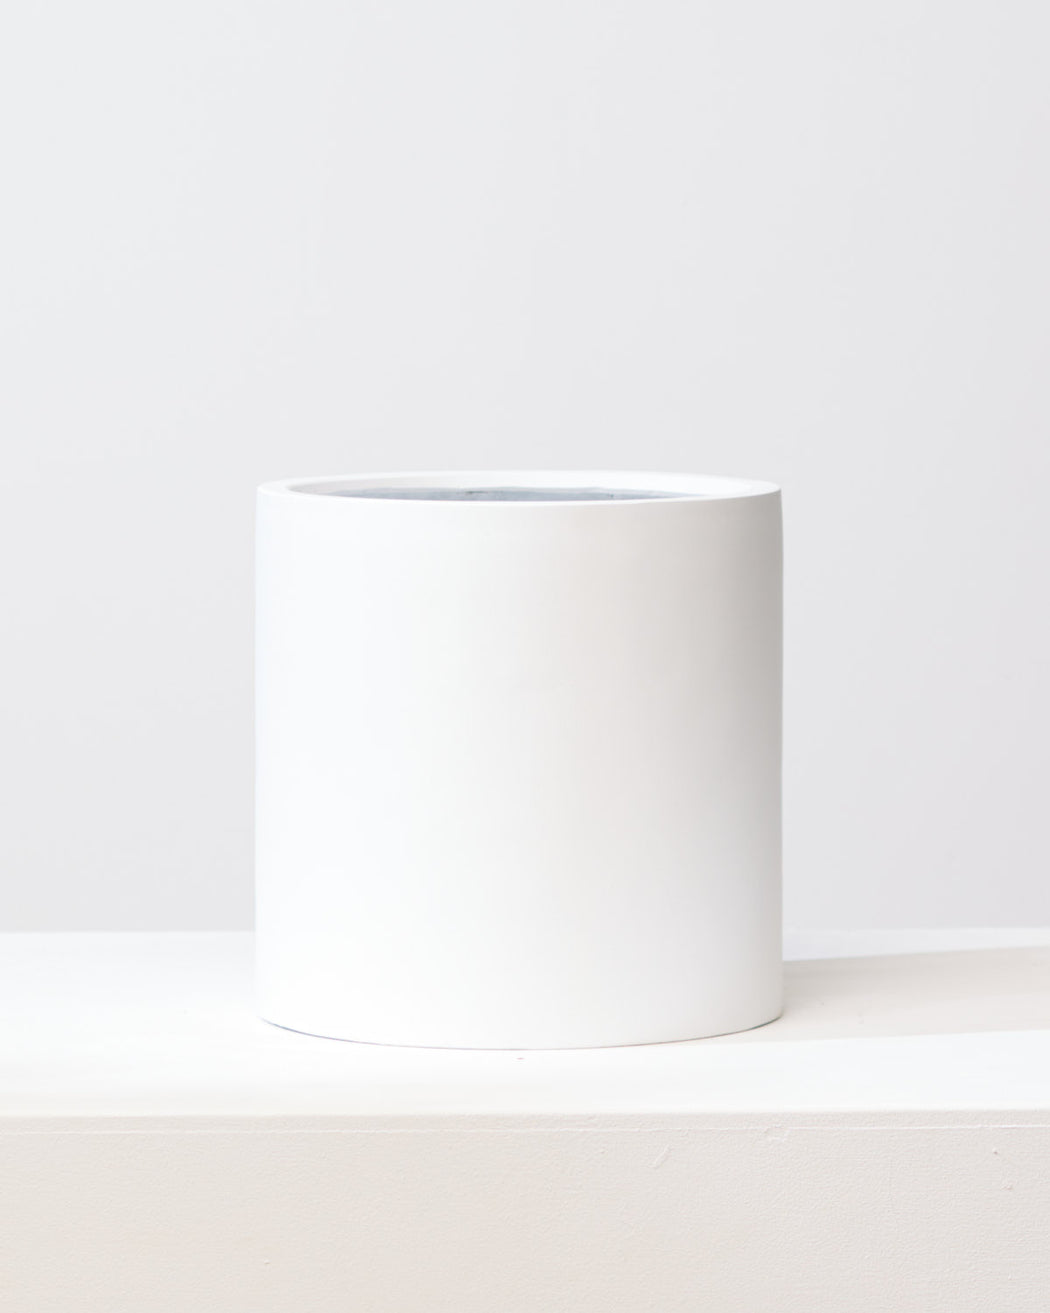 COMMON HOUSE - WHITE CYLINDER PLANTER - Medium 12 Inch